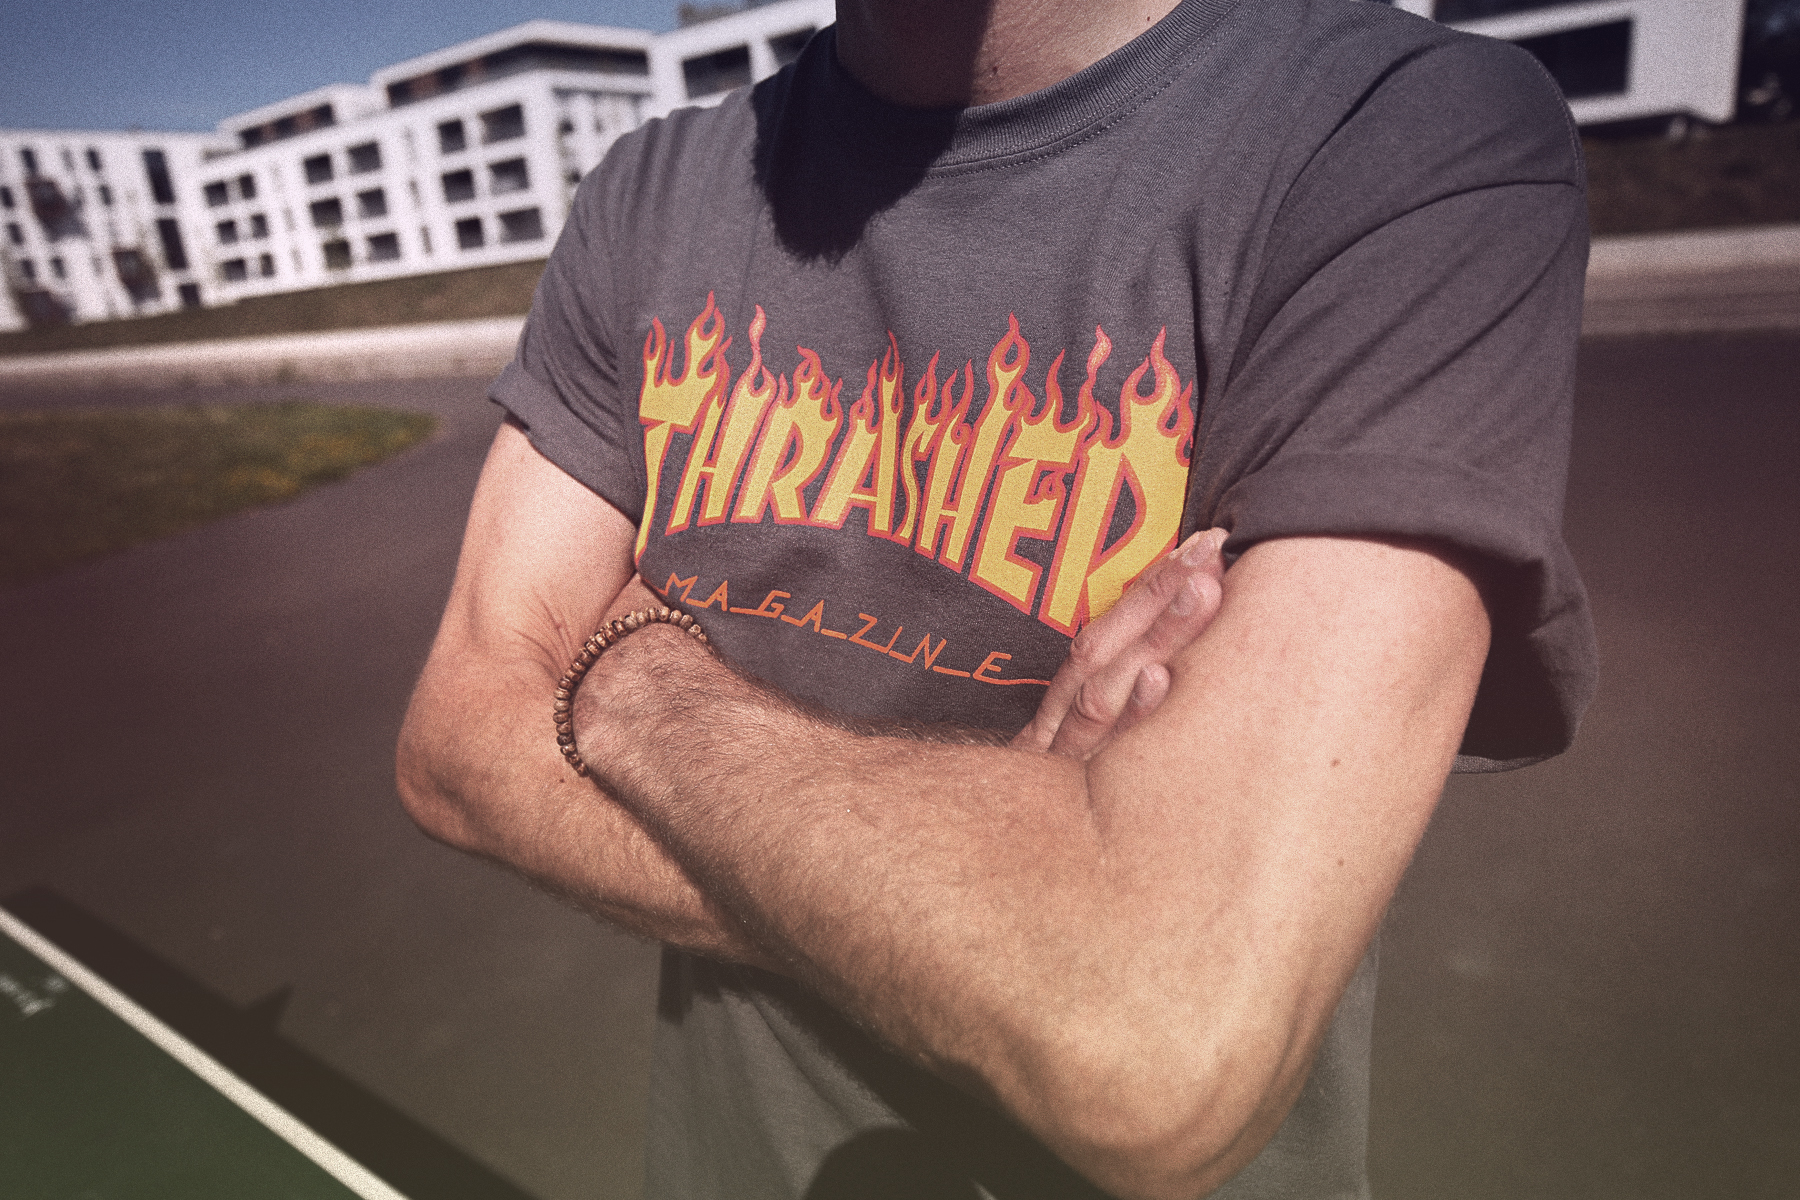 thrasher magazine t-shirt trend logoshirt logo-t-shirt trend levi's shirt vintage vibes cool critic skateboarder skateboard sports lifestsyle blogger max bechmann ollie jump board deck magenta board vans off the wall skating cats & dogs lifestyleblog 9